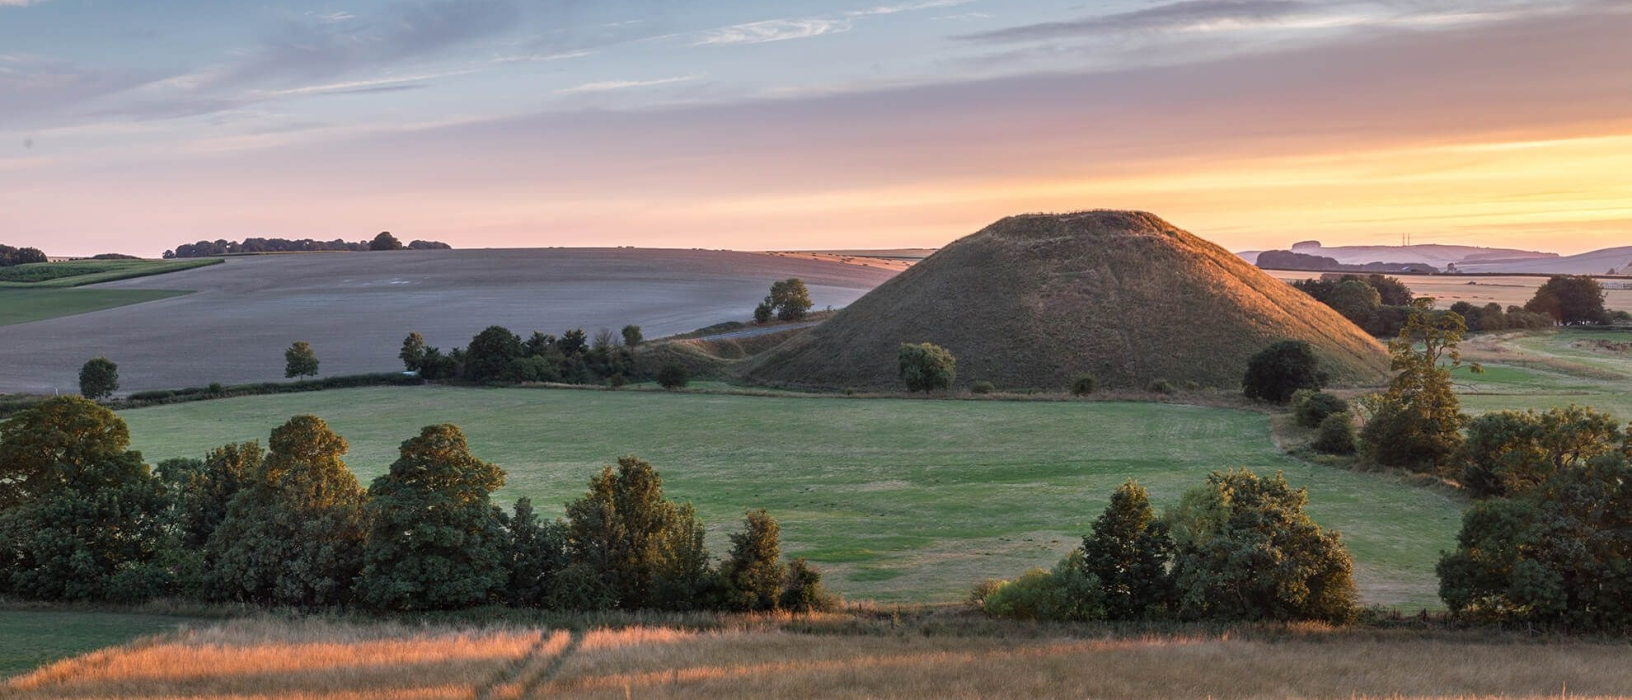 Visit ancient Silbury Hill and Avebury Stone Circle nearby (2/6)